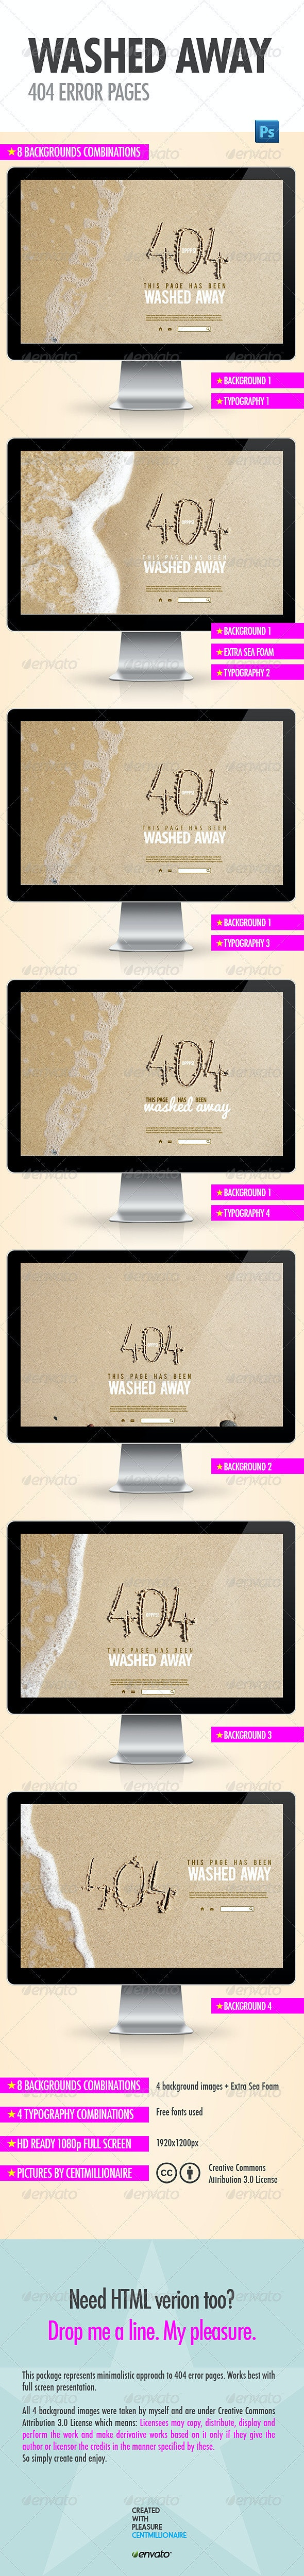 Washed Away 404 Error Pages - 404 Pages Web Elements